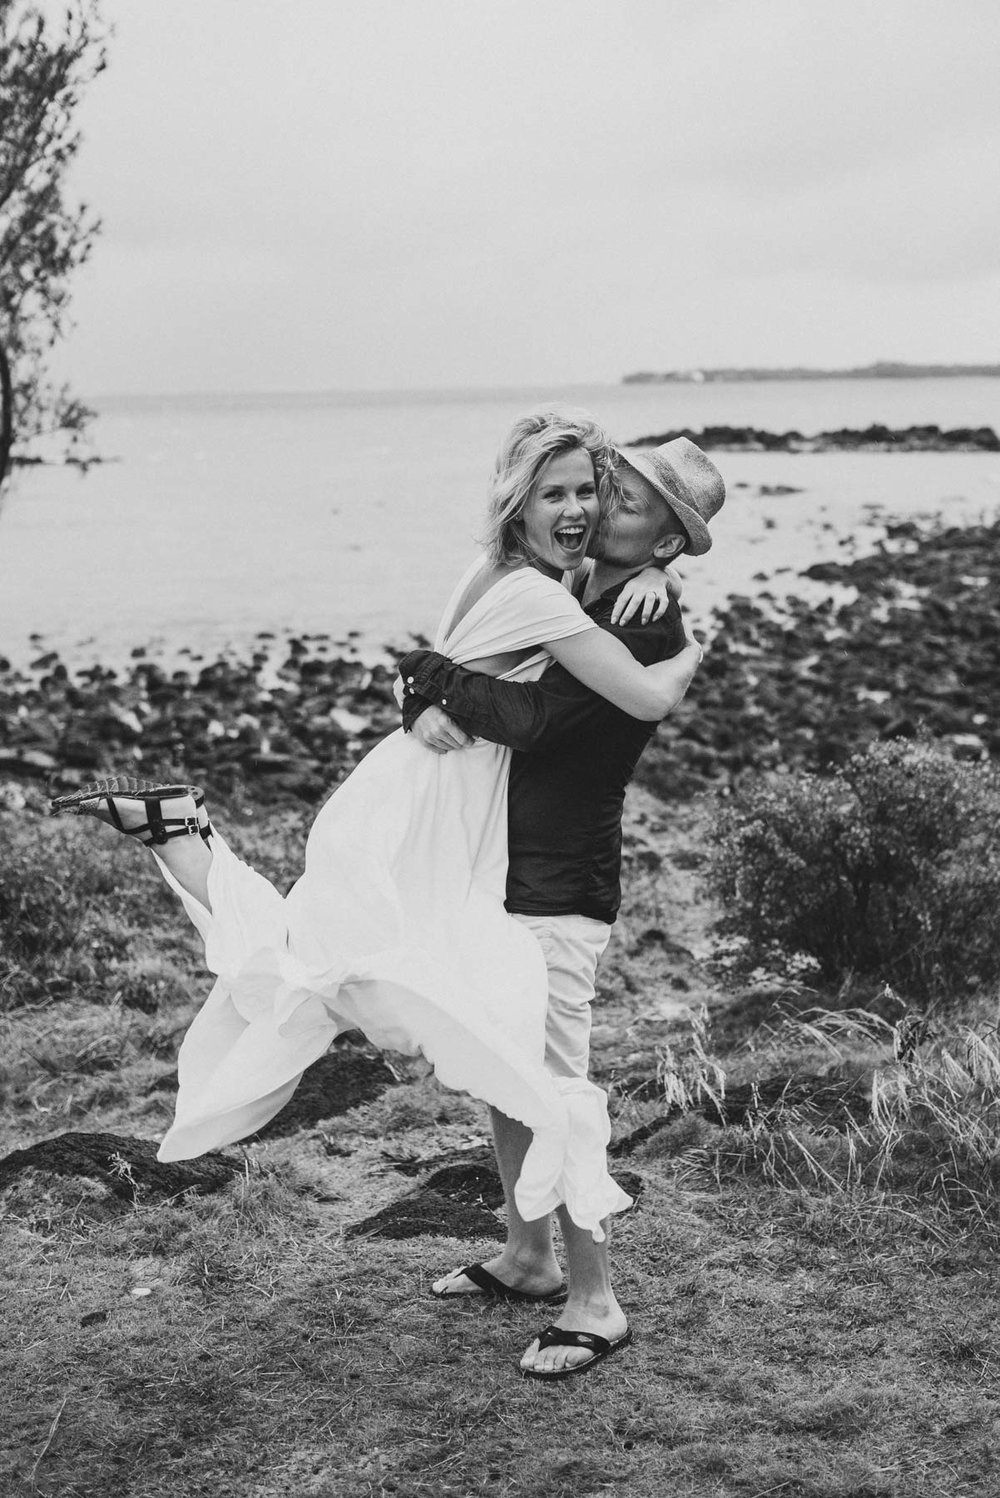 Copy of Sita Kelly | Mauritius Honeymoon Photographer | man lifting woman up, woman laughing